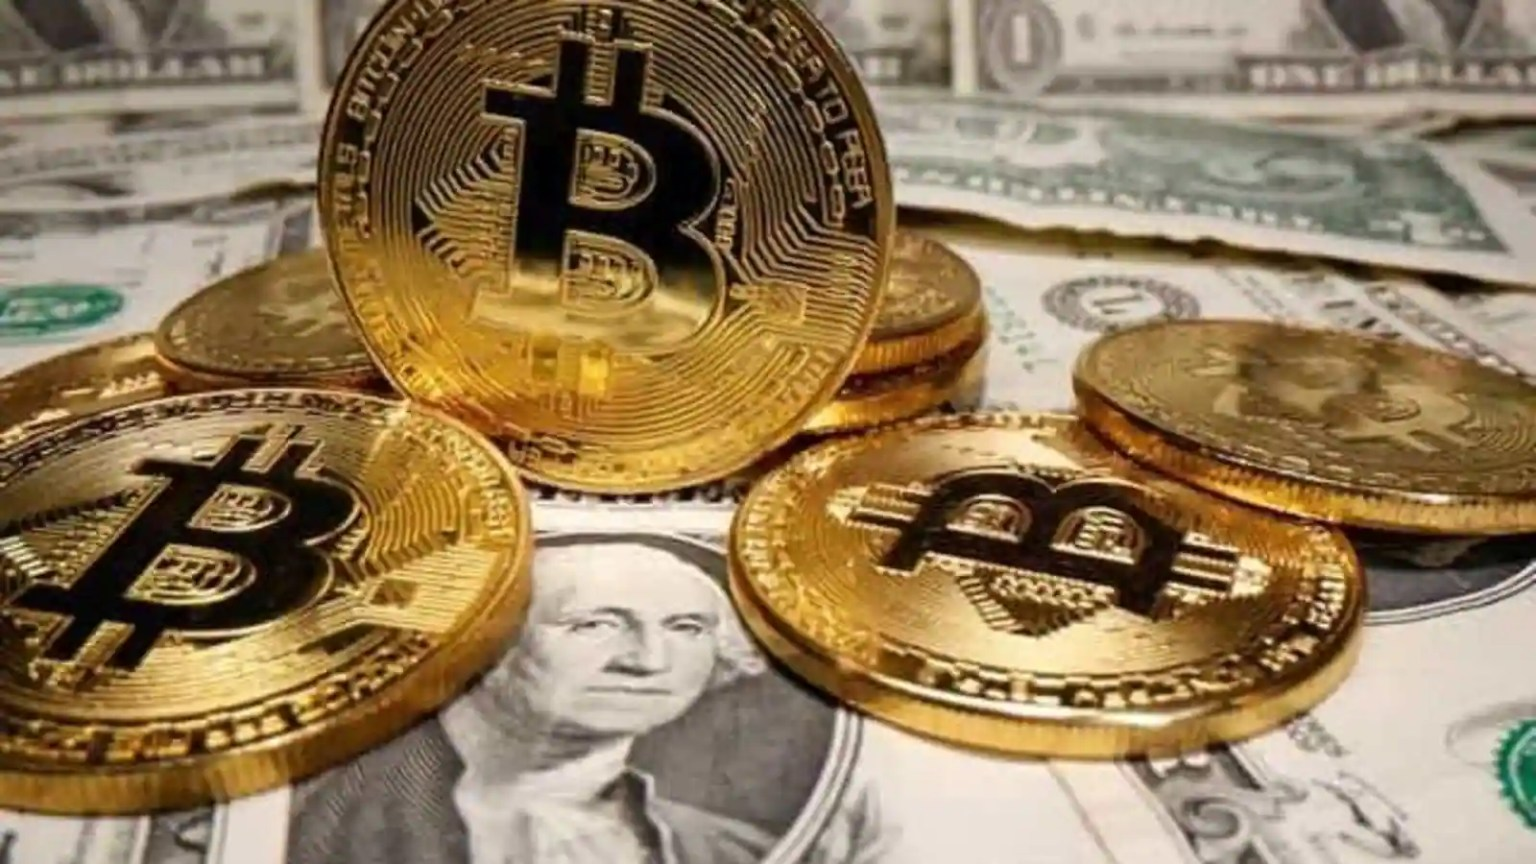 Bitcoin prices have risen 50% this month, to just under $ 44,000 at the end of September. Pope has been reinforced by new hopes that regulators in the United States will not launch cryptocurrencies,